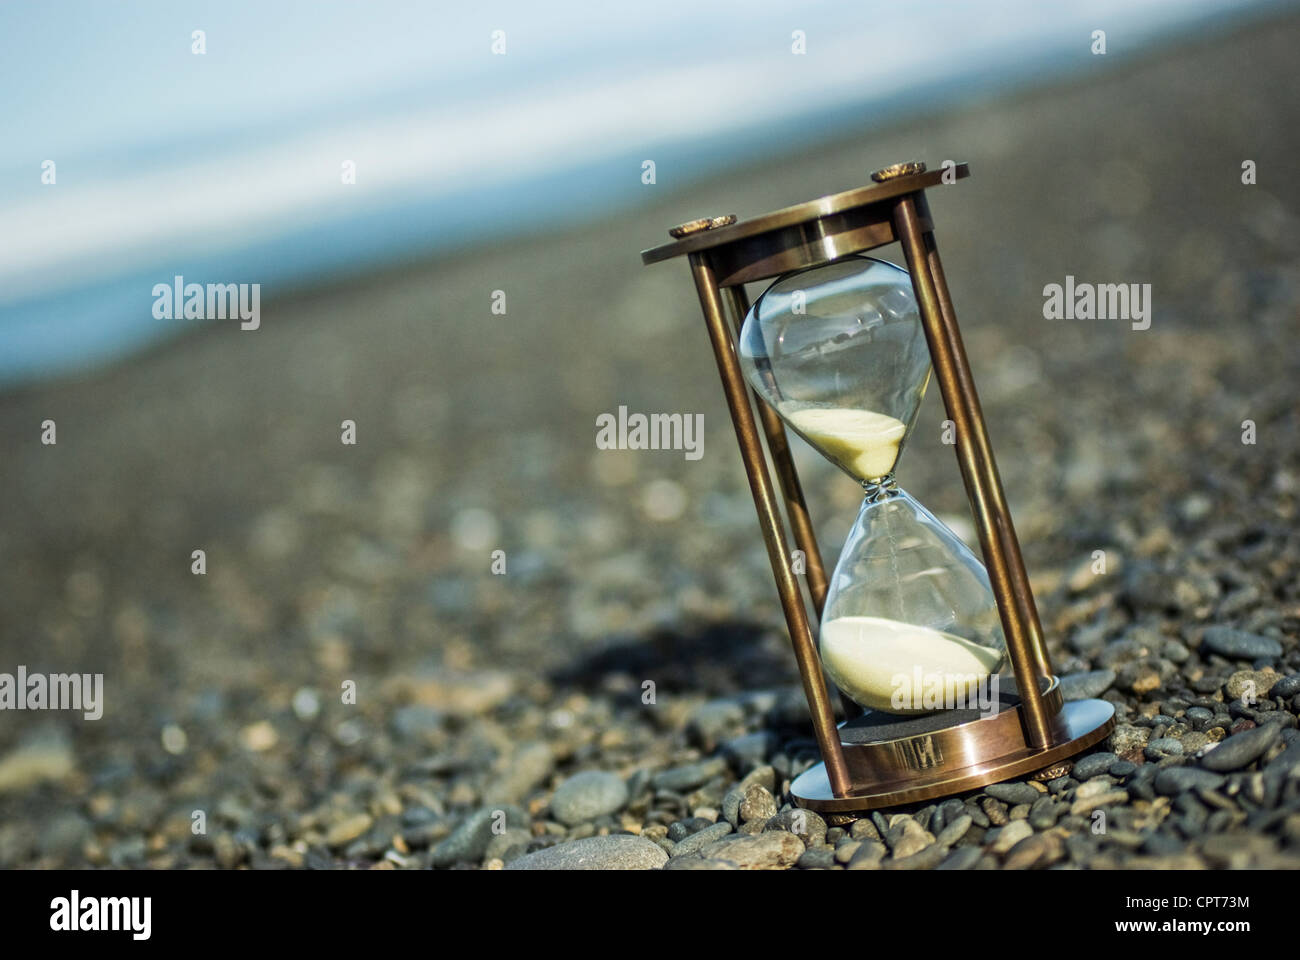 Hourglass on stony beach, photographed at an angle. - Stock Image